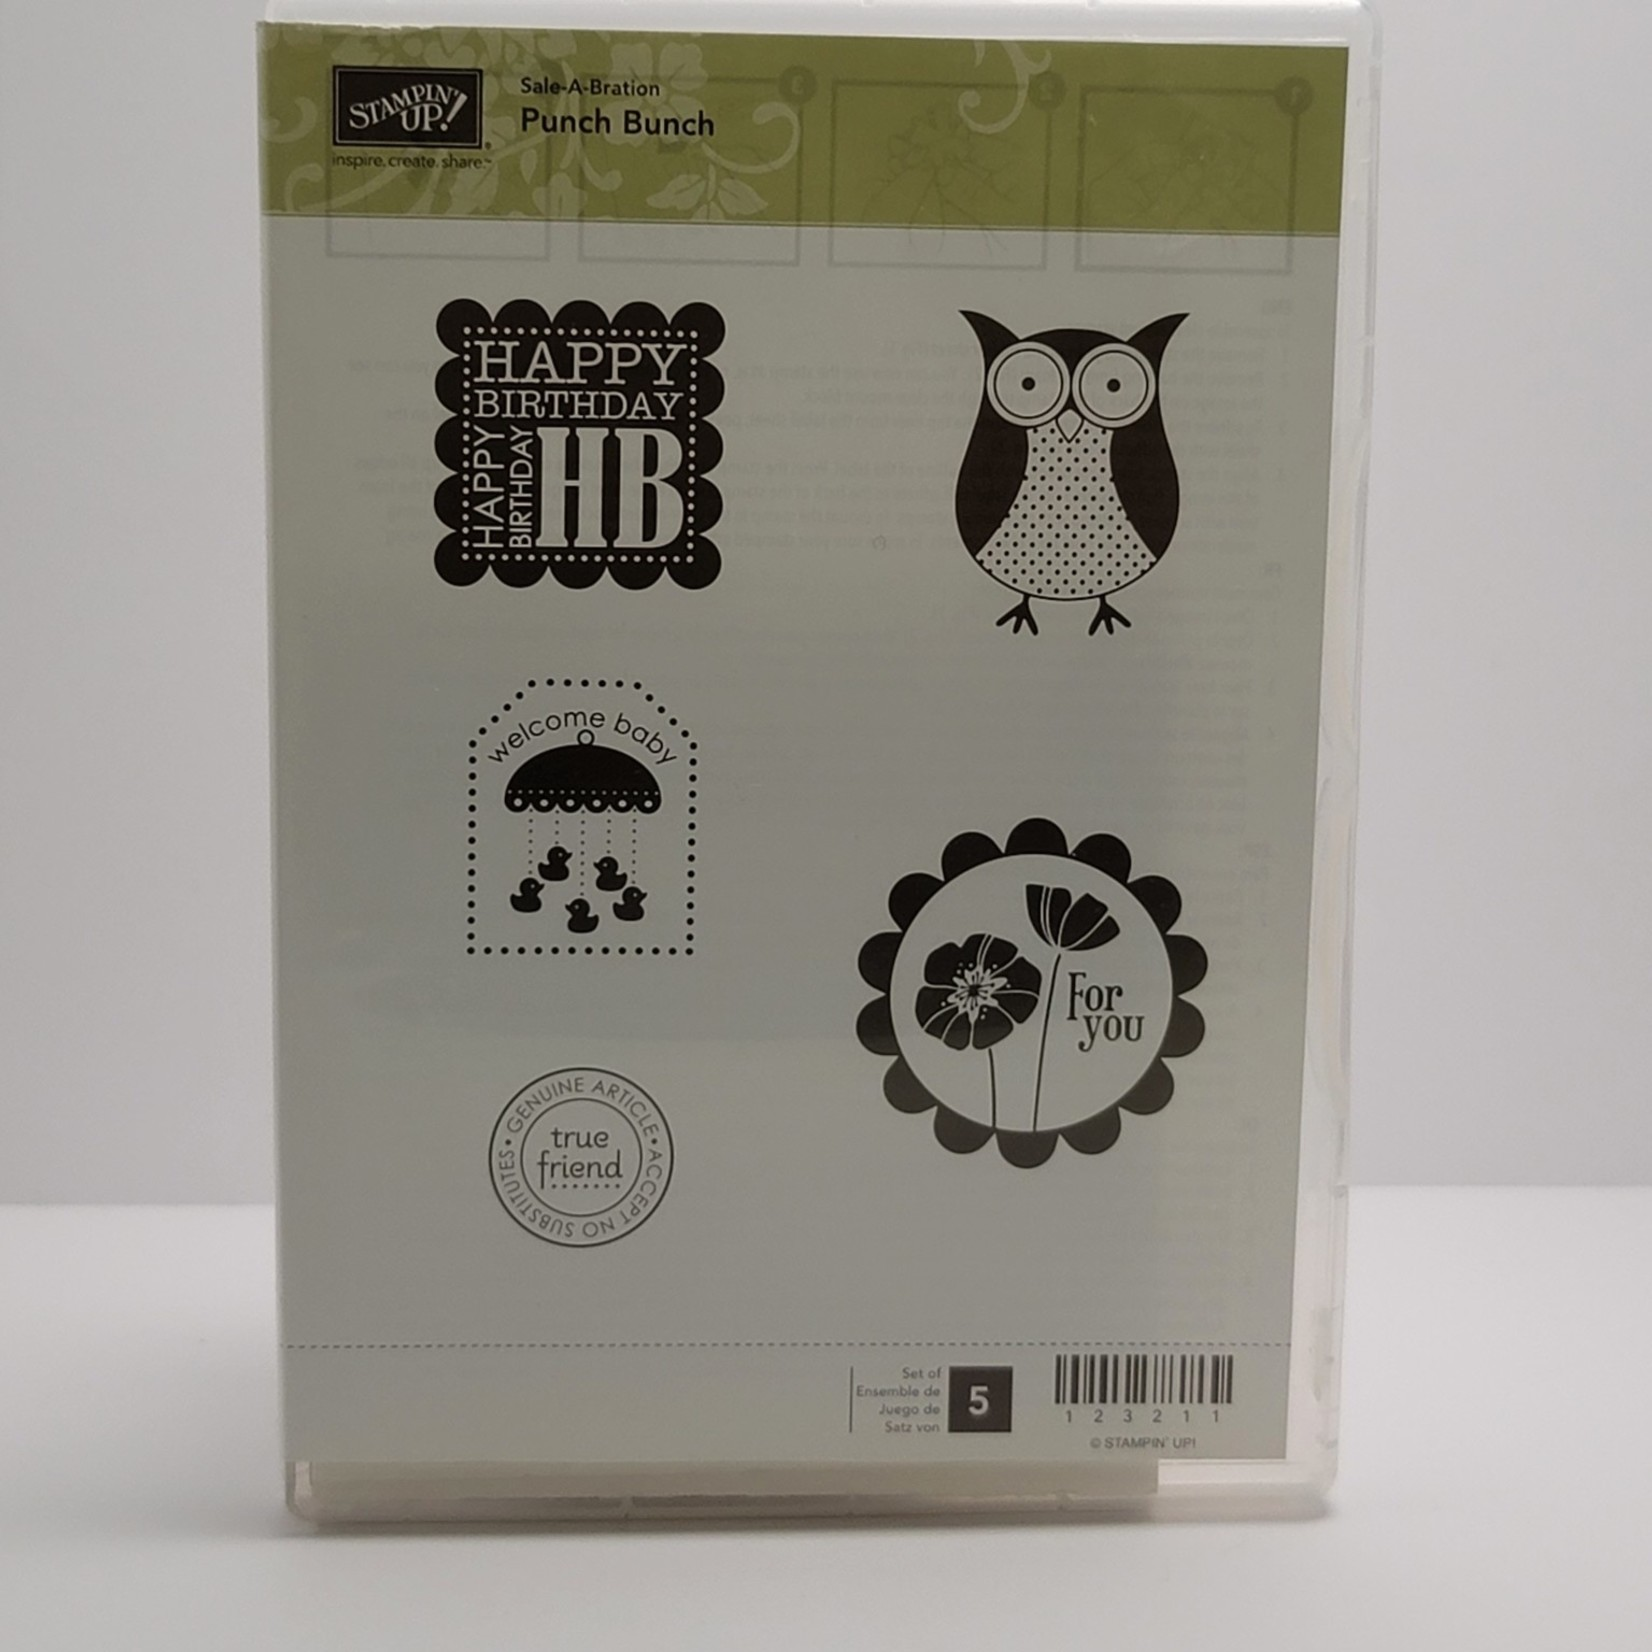 Stampin' Up - Cling Stamps - Punch Bunch